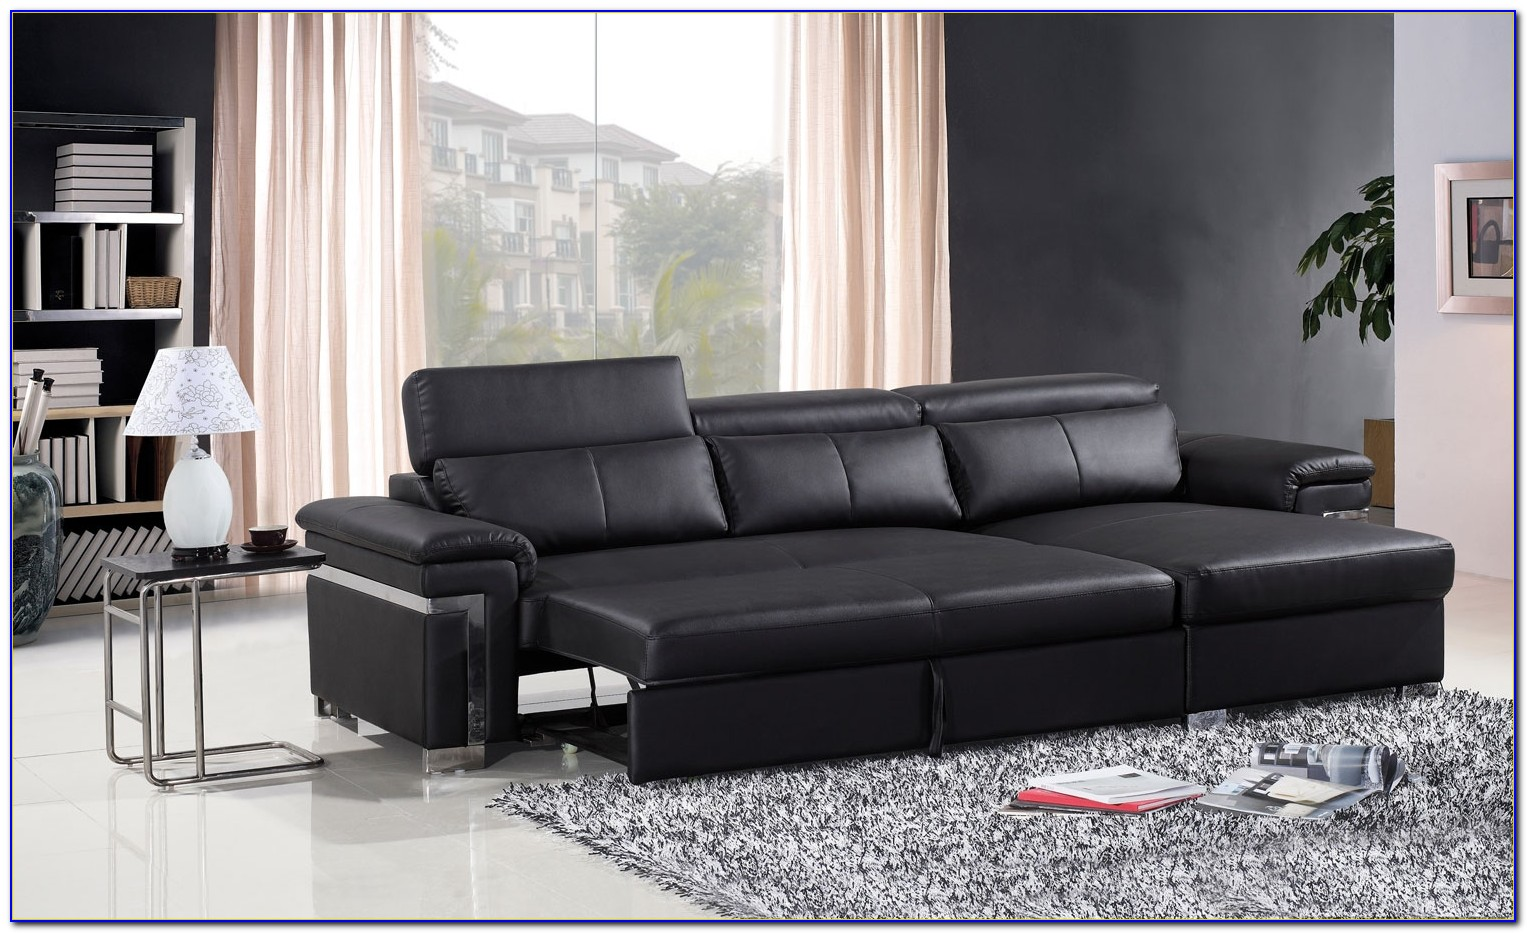 Leather Sectional Sofa Bed With Chaise